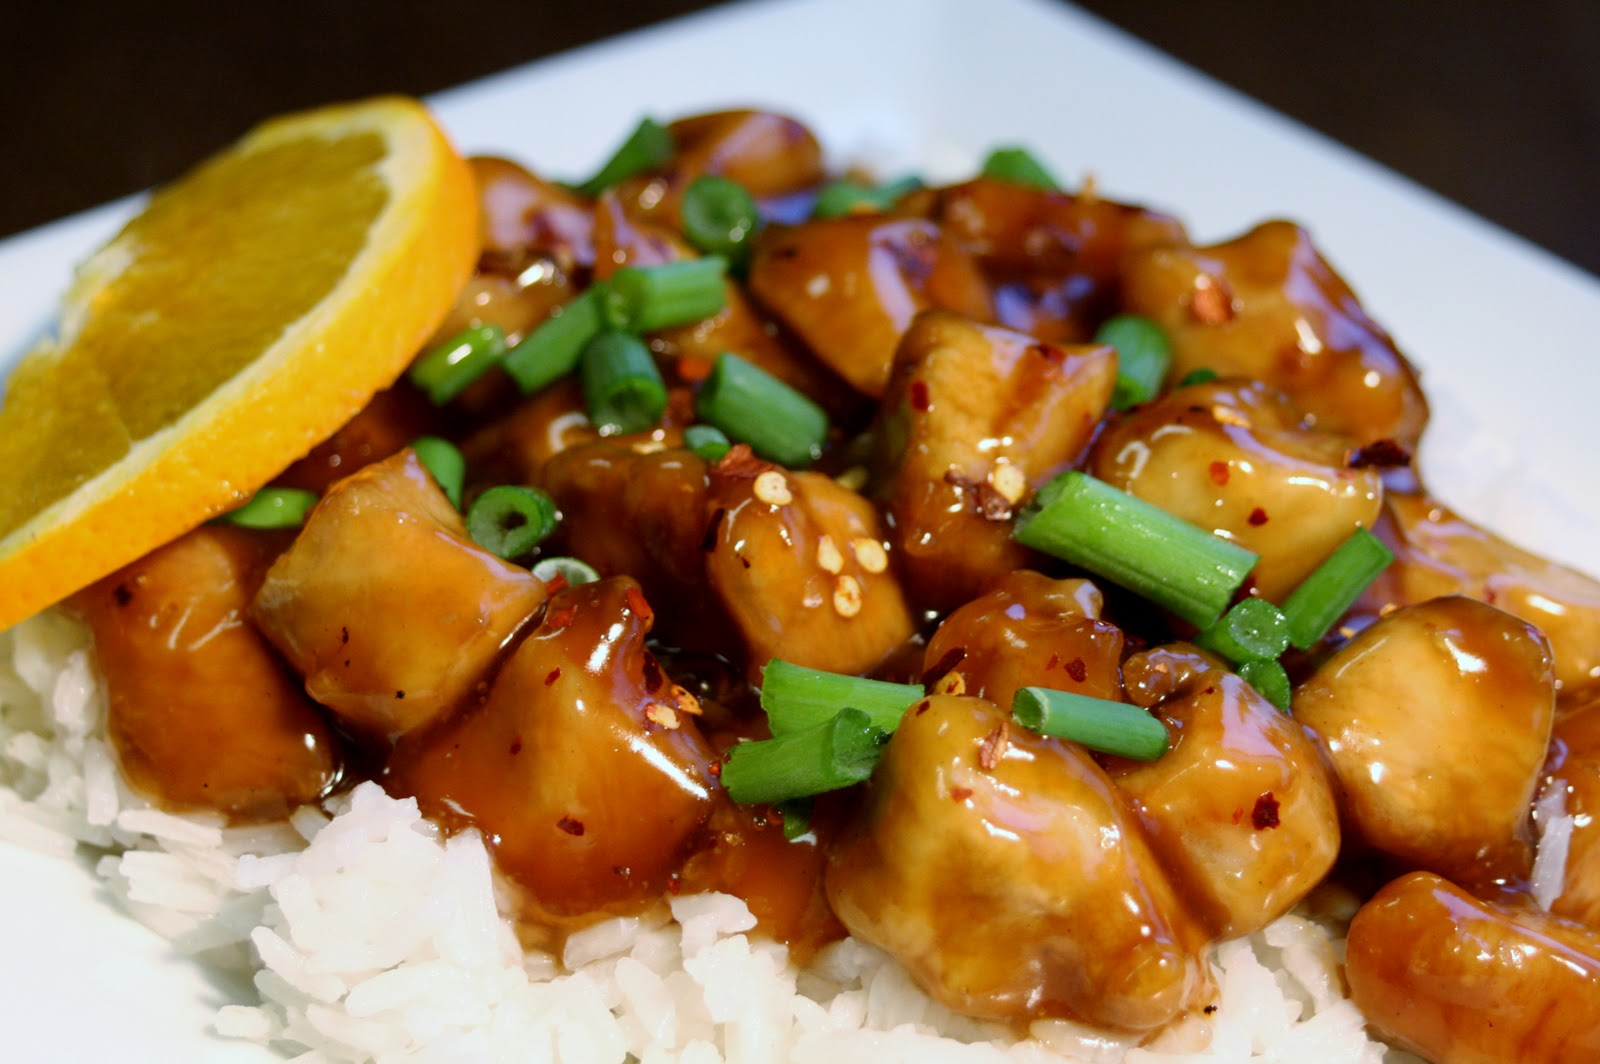 Lemon And Orange Chicken picture